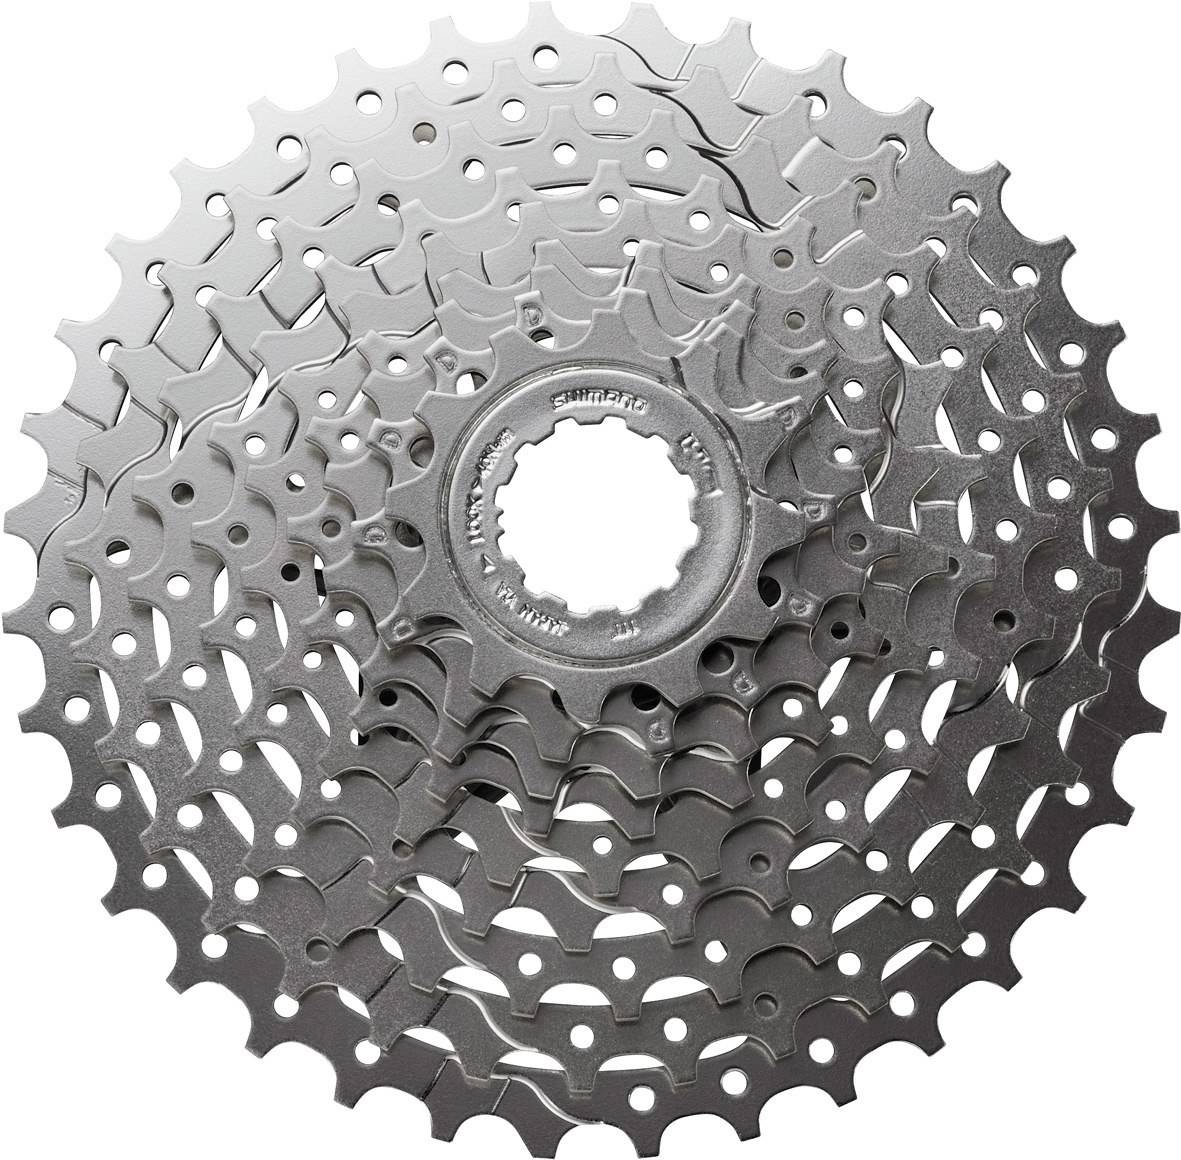 CS-HG400 Alivio 9-speed cassette 11-36